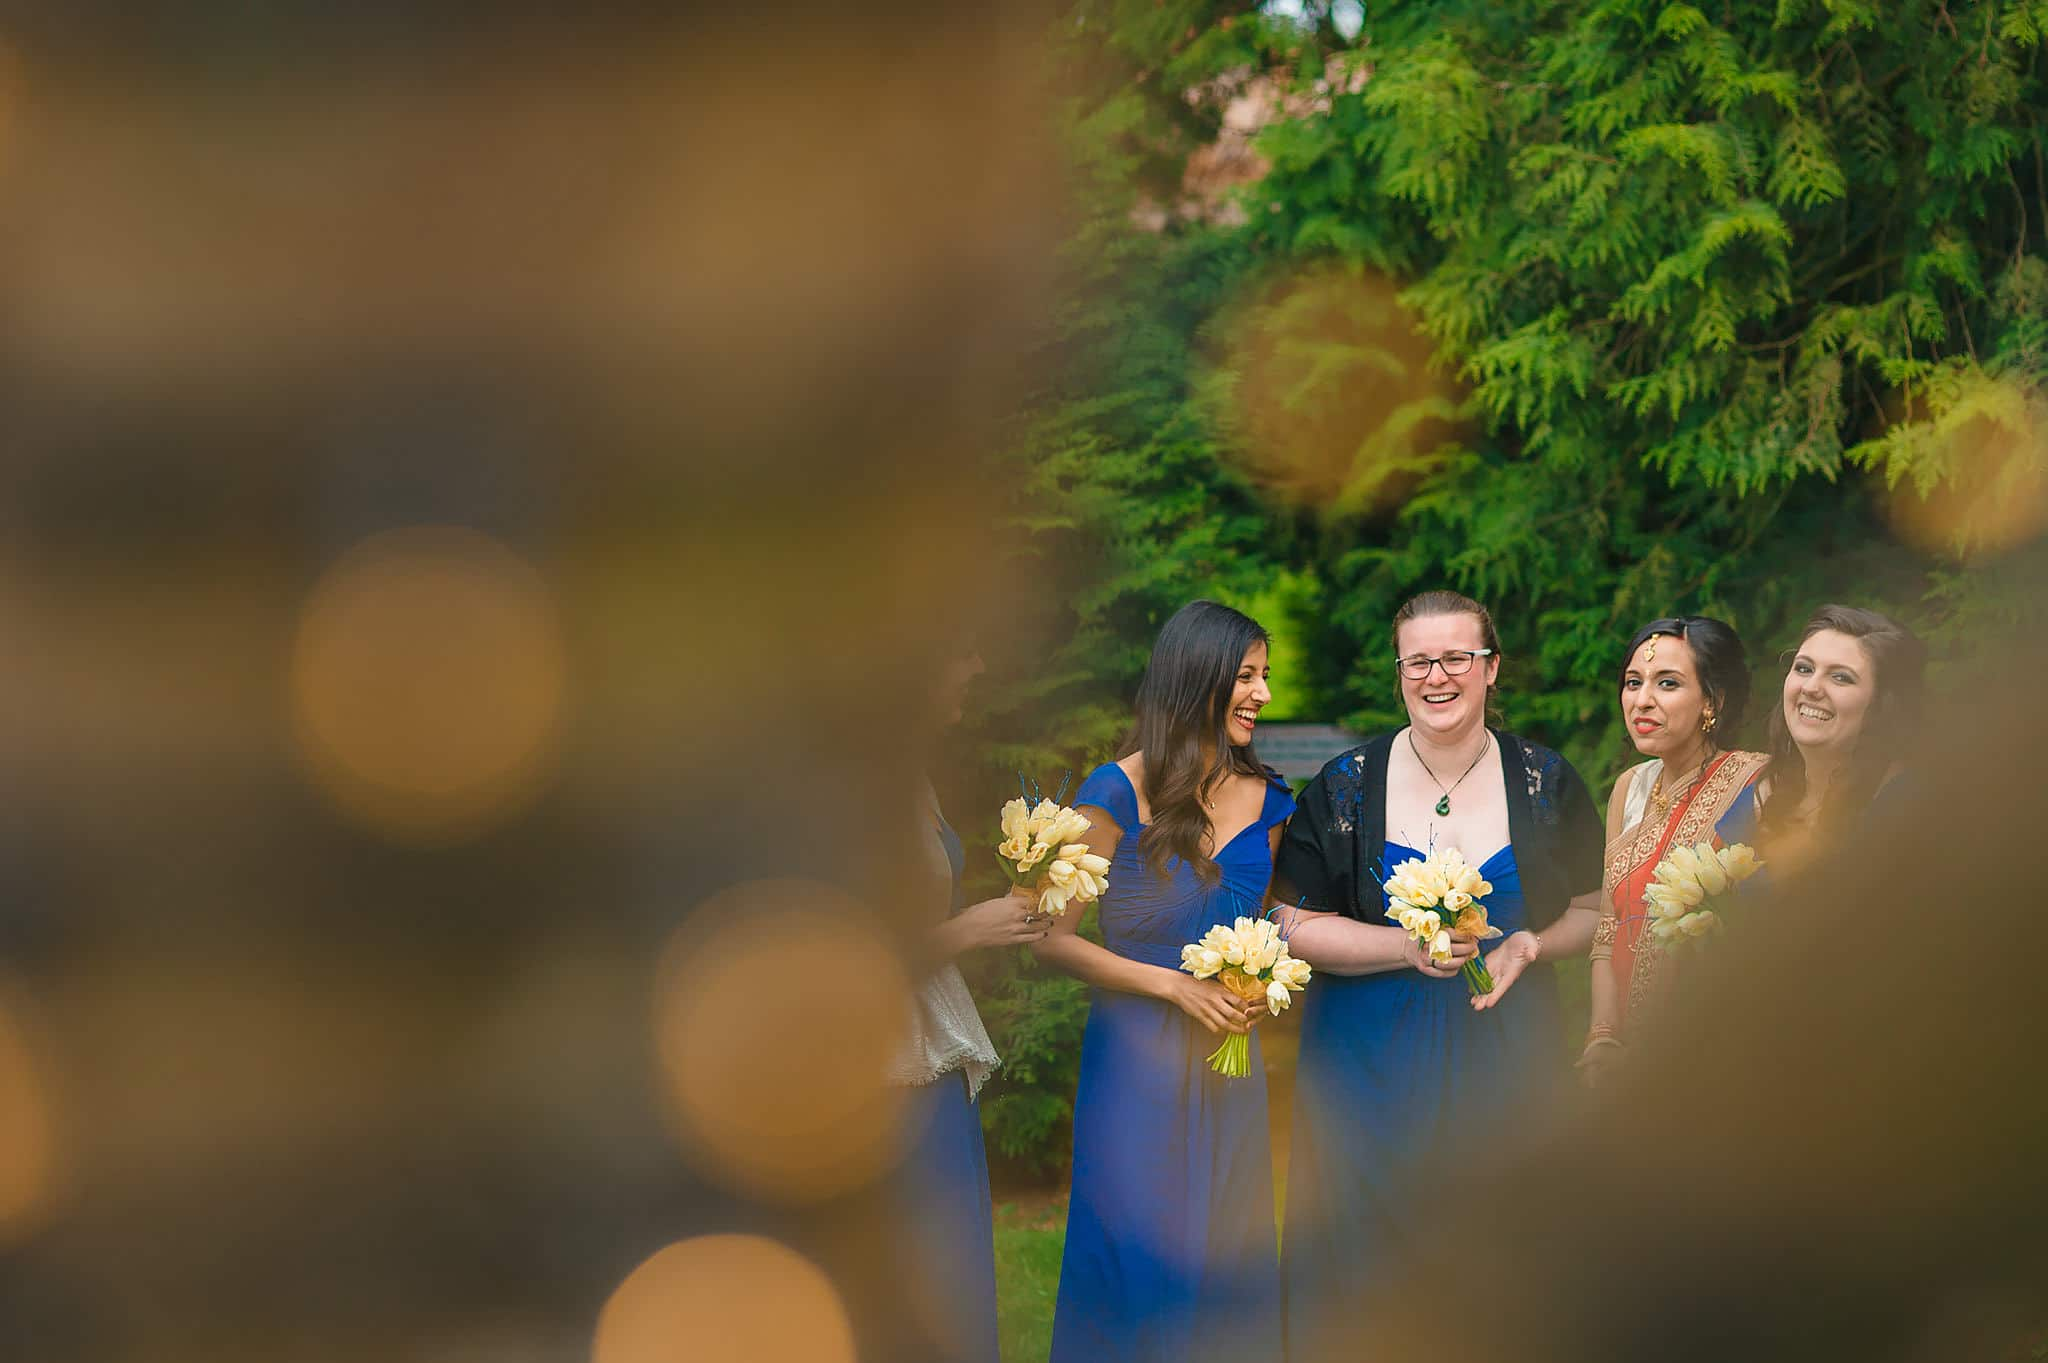 birtsmorton court wedding 208 - Sheena + Lee | Birtsmorton Court Wedding